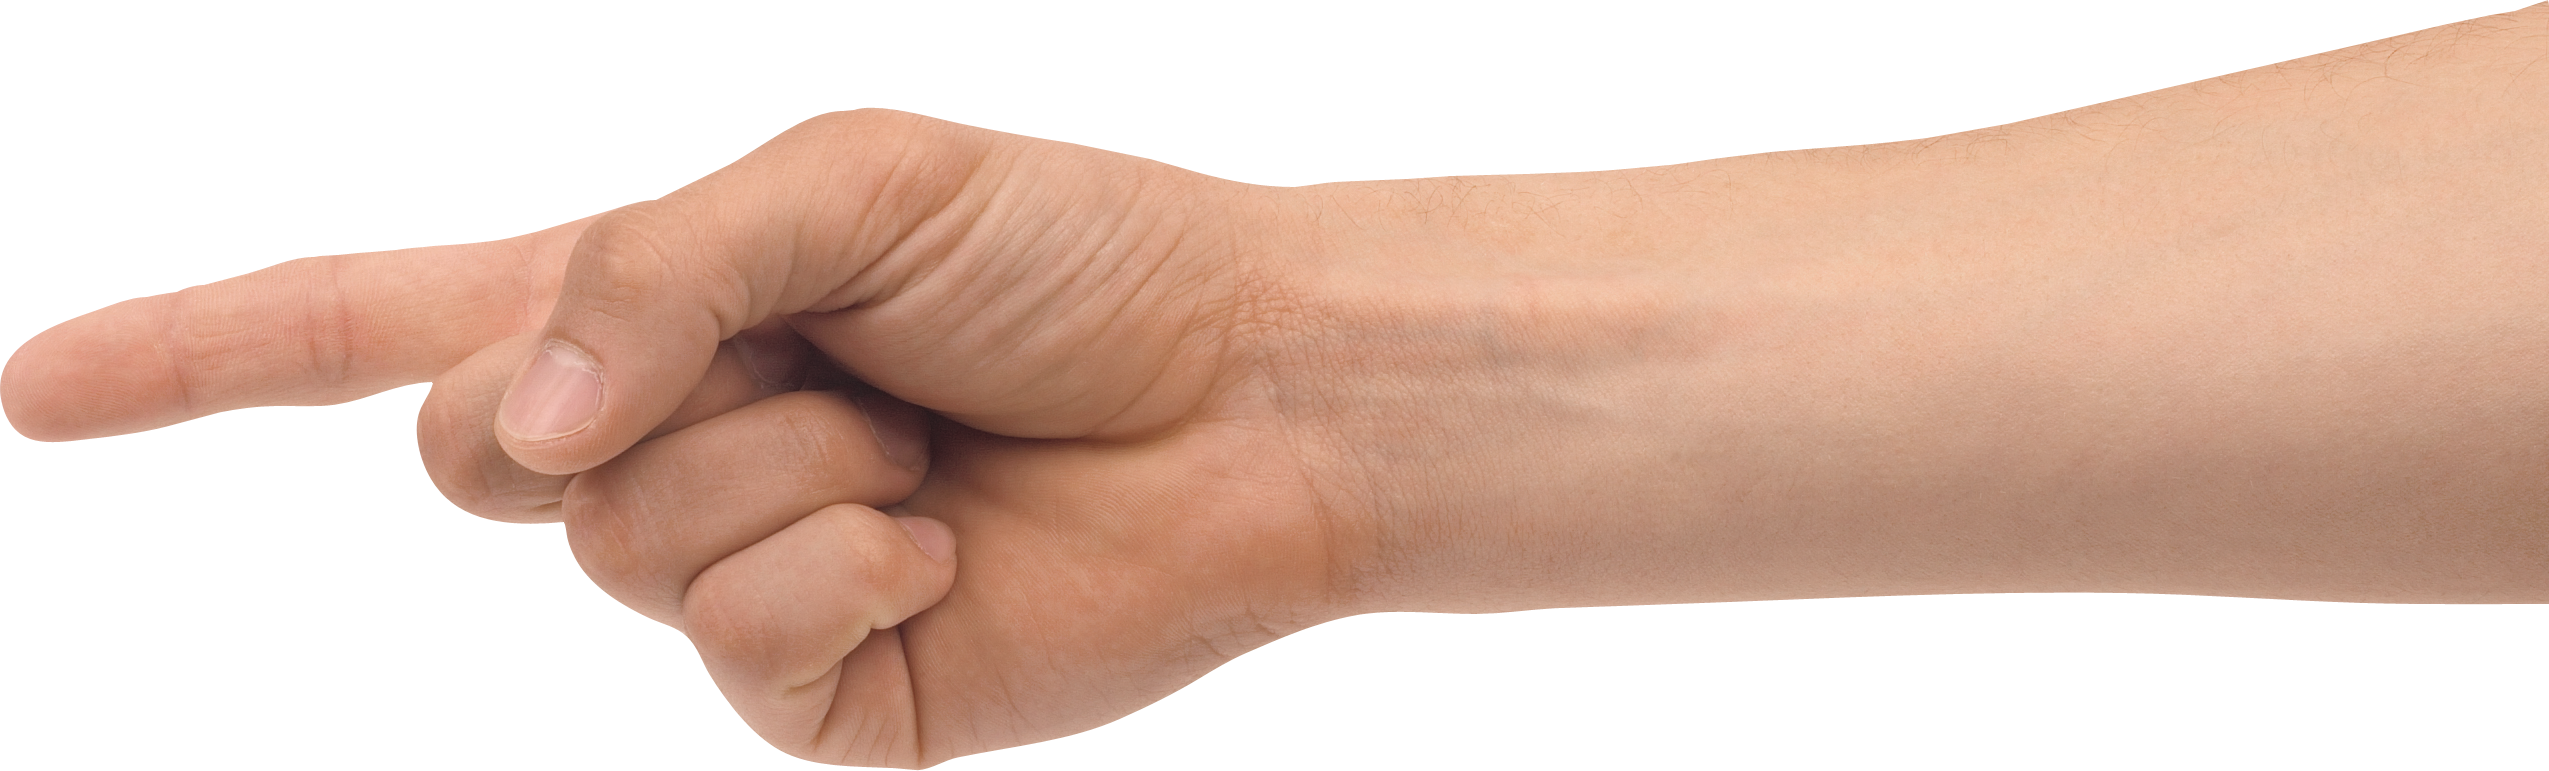 Human arms png. One finger hand image